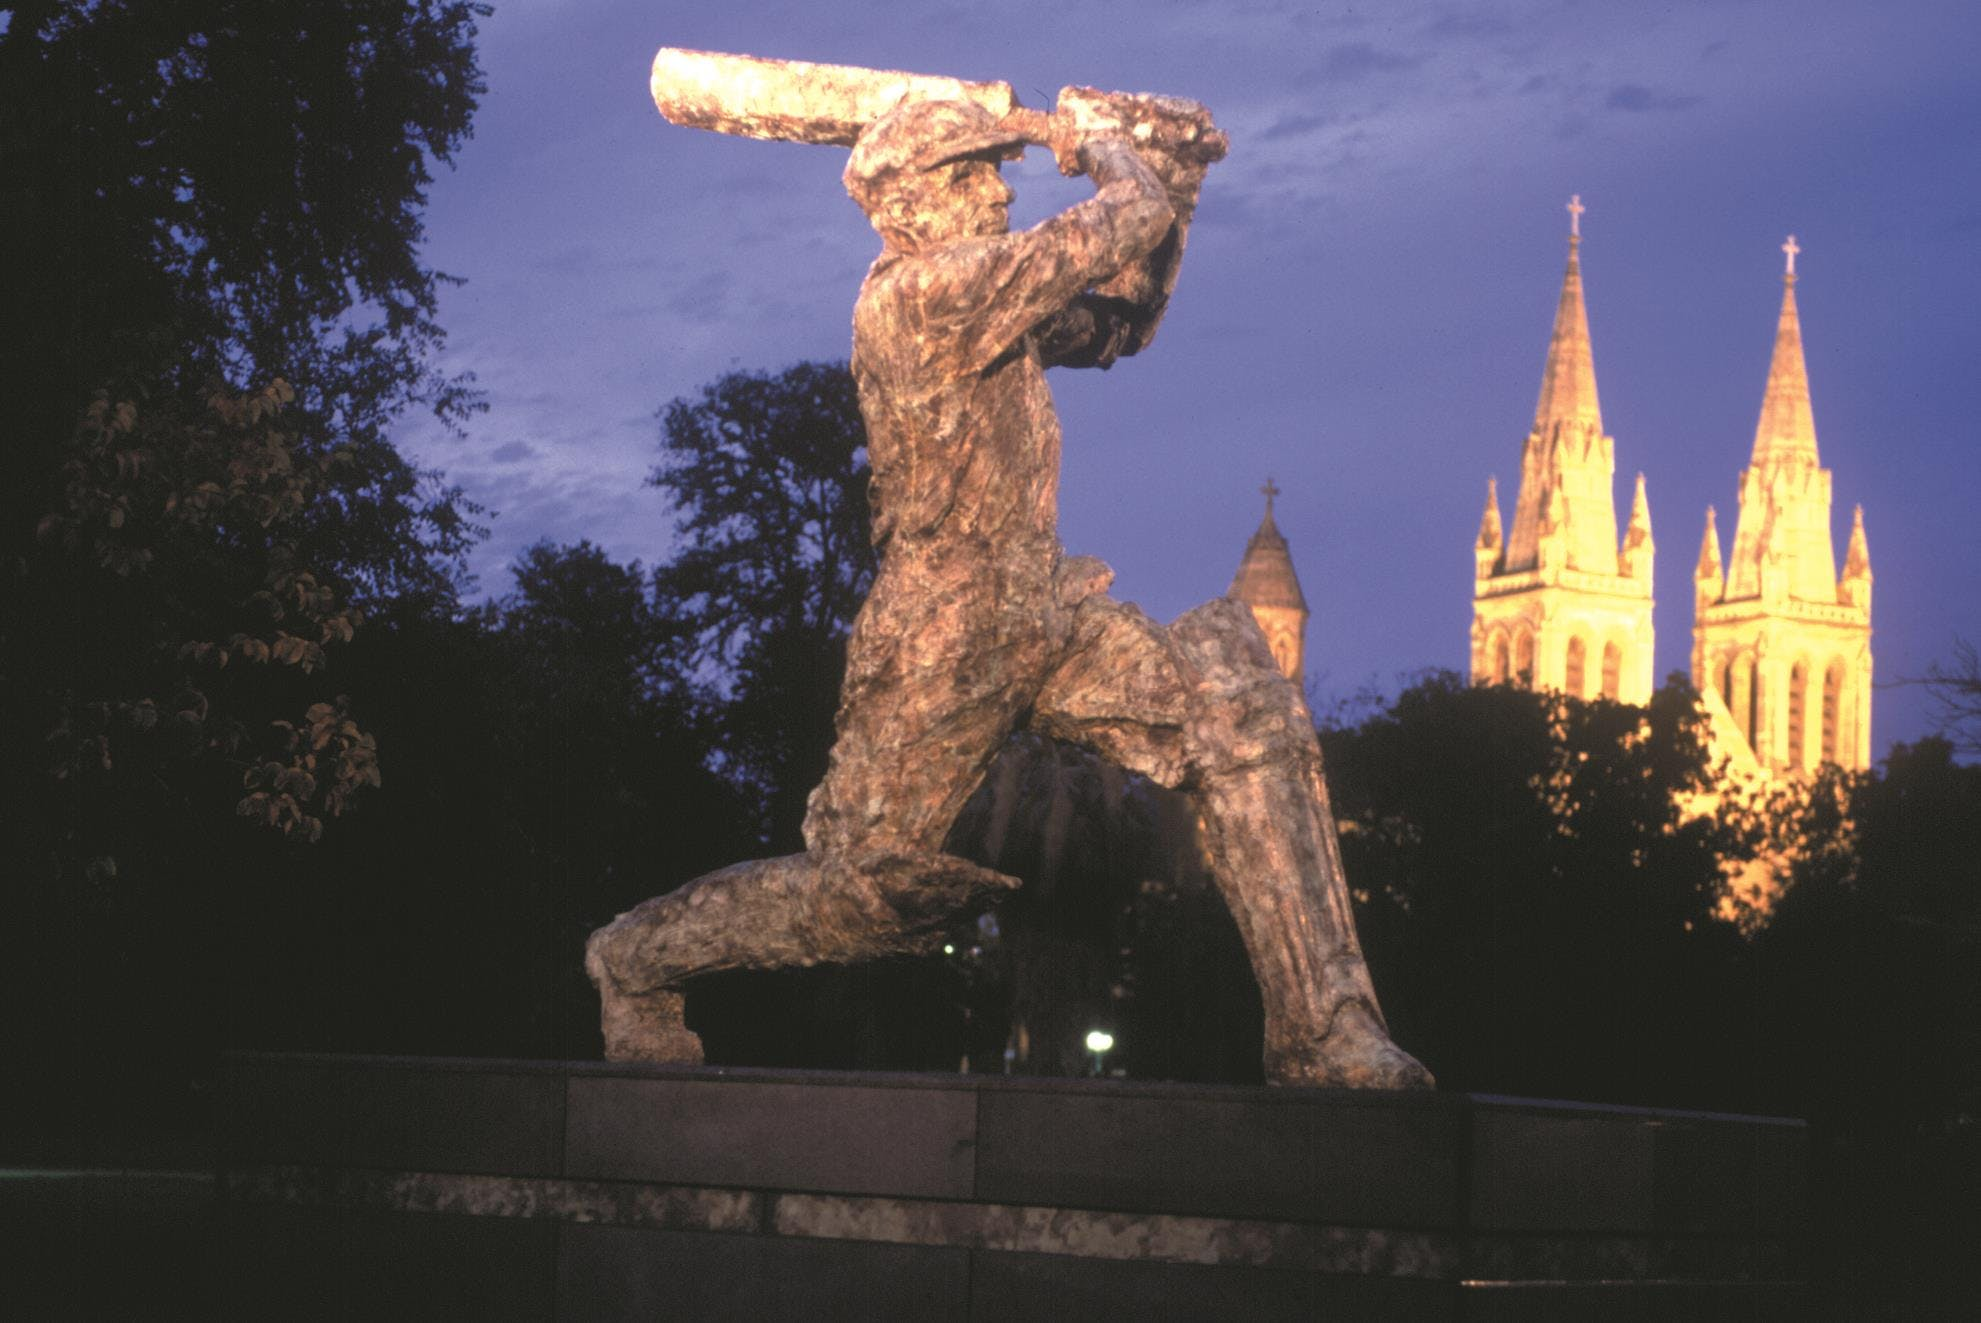 Commemorative sculpture